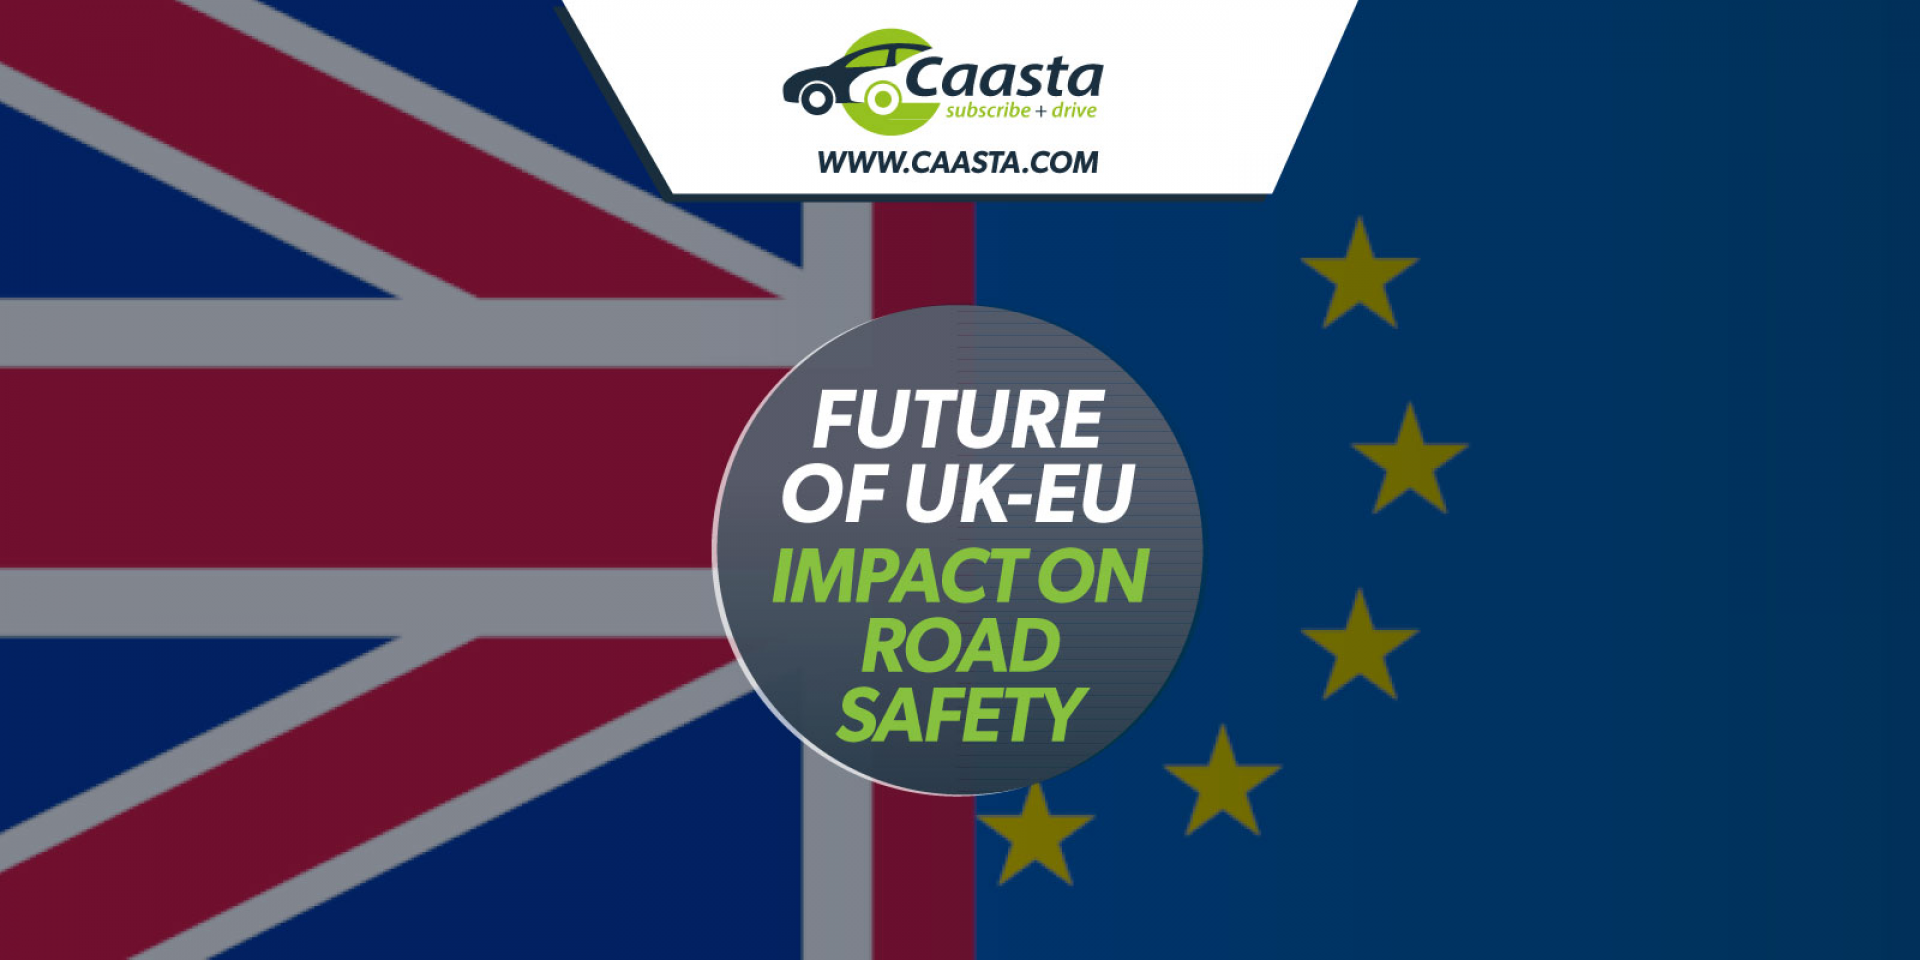 How will the future UK-EU relationship impact road safety?